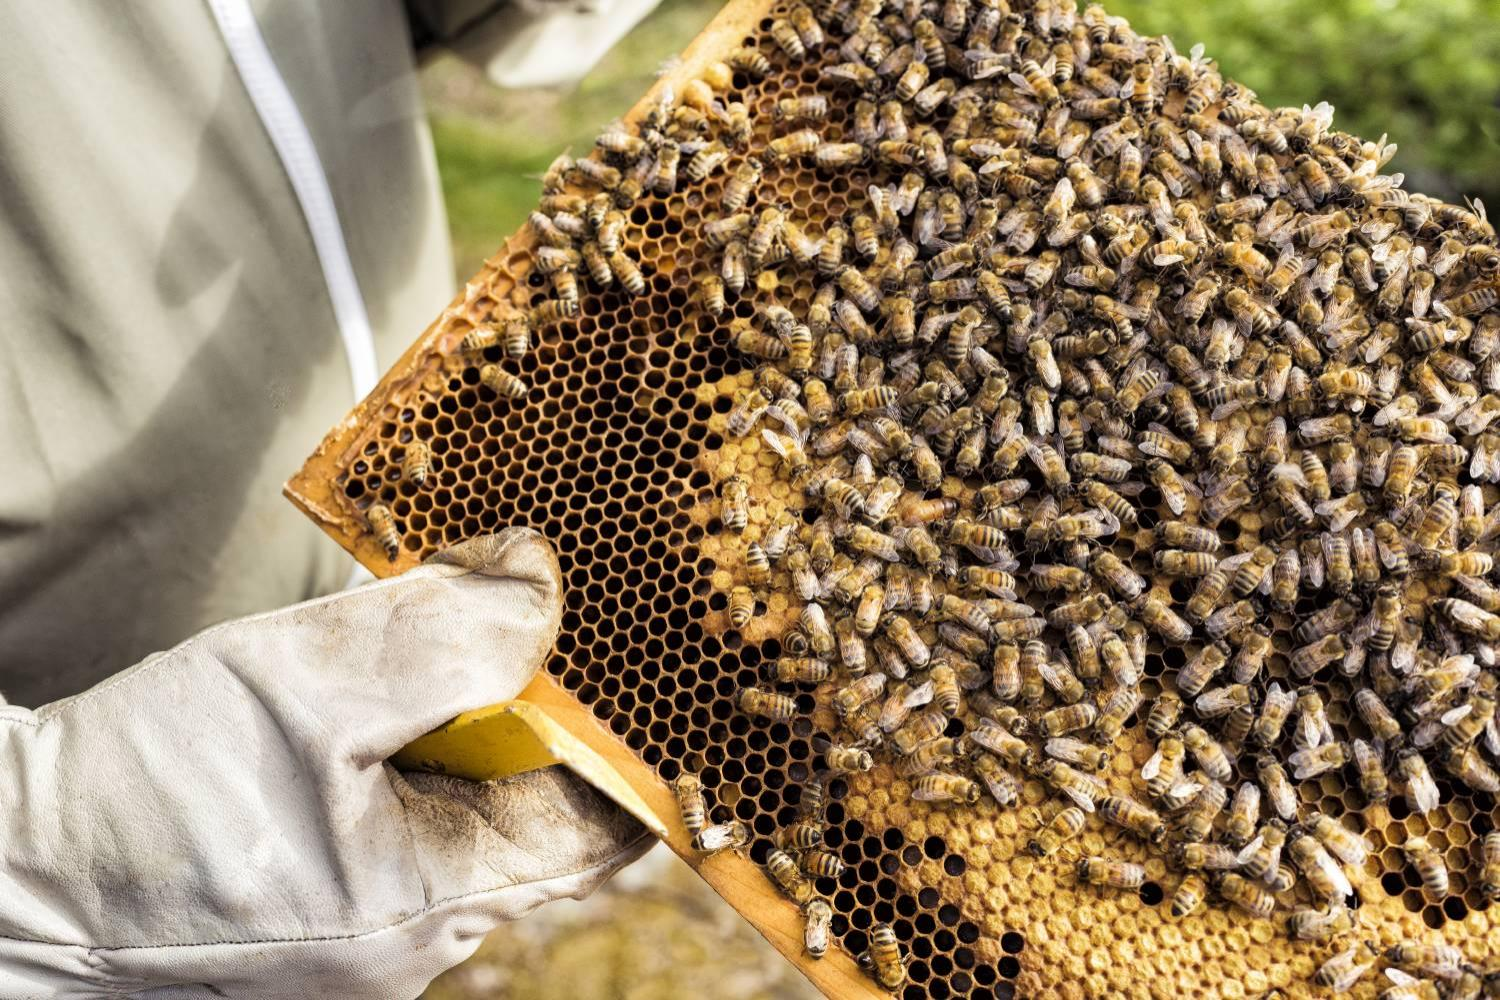 Beekeeper holding honeycomb with bees